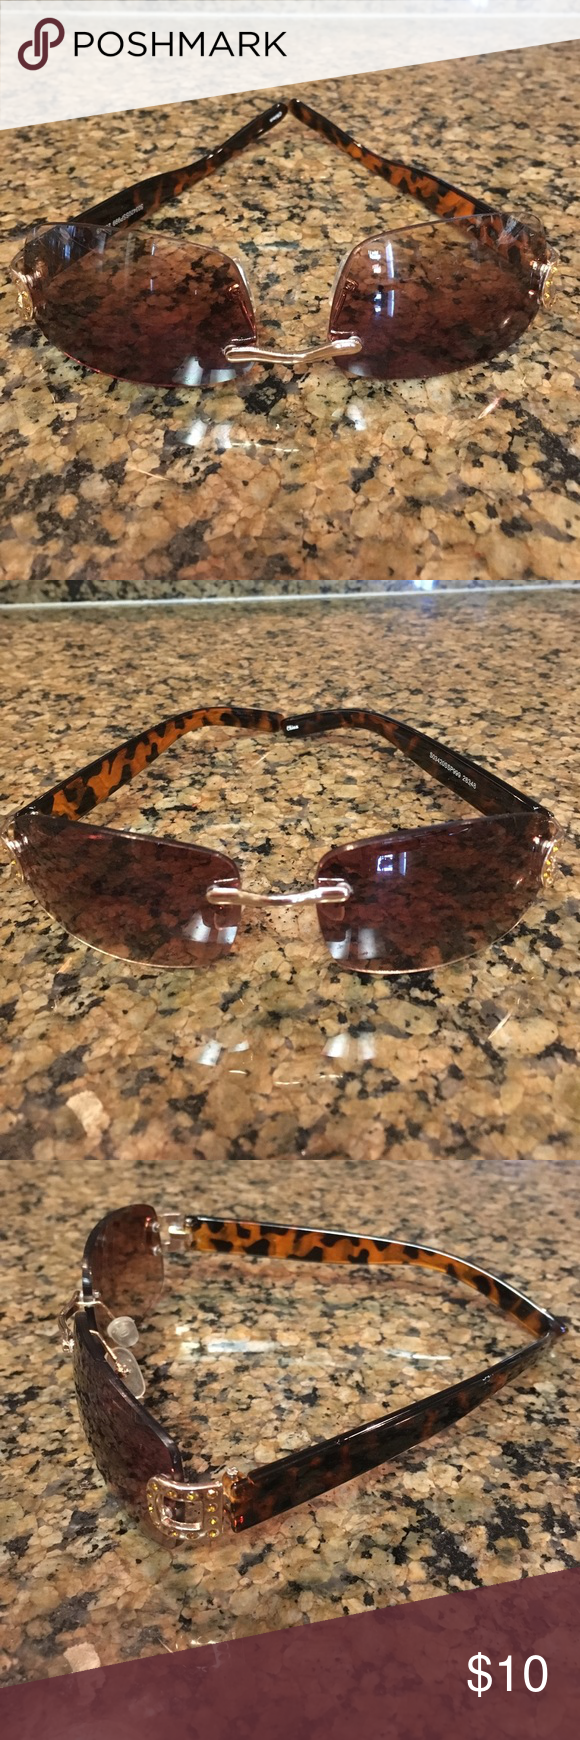 Brownish black sunglasses 😎 Super cute and light brownish/black sunglasses. Has clear nose pads and gold decoration on sides with gold rhinestones. Great condition. Accessories Sunglasses